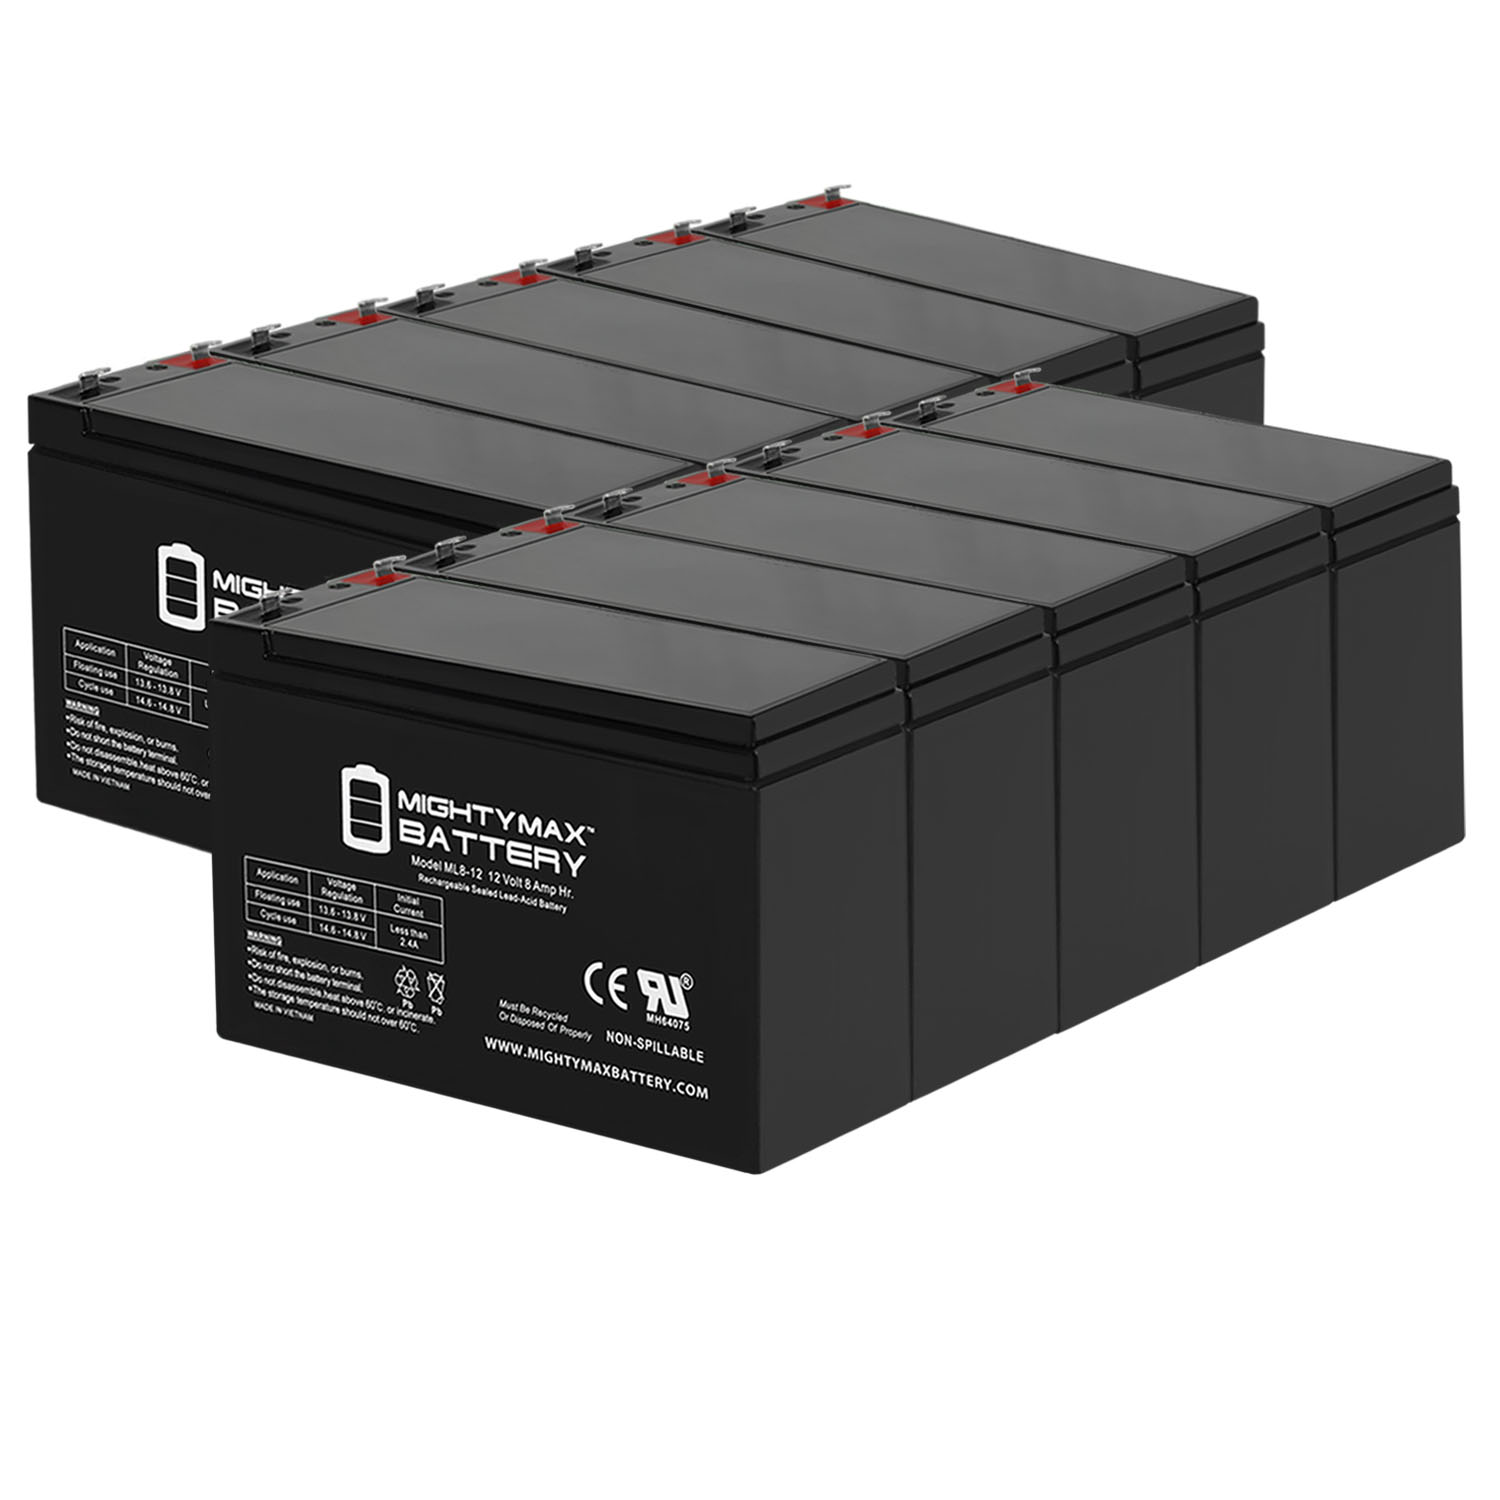 ML8-12 - 12V 8AH Replacement Battery for APC Back-UPS ES USB 650 - 10 Pack